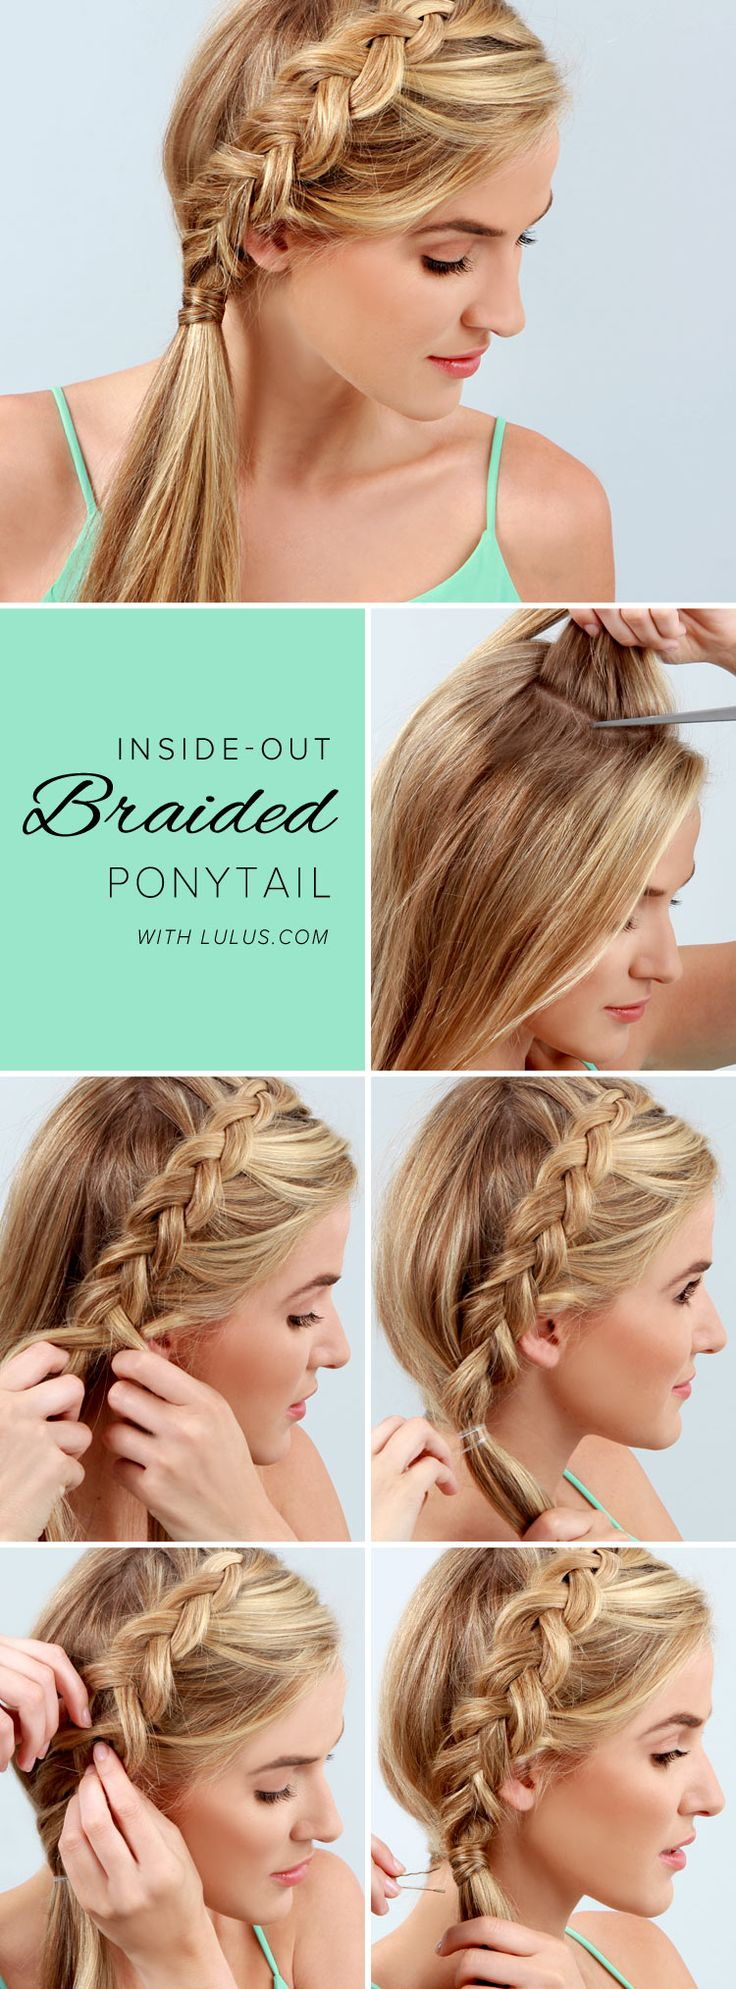 Lulus Howto: Insideout Braided Ponytail